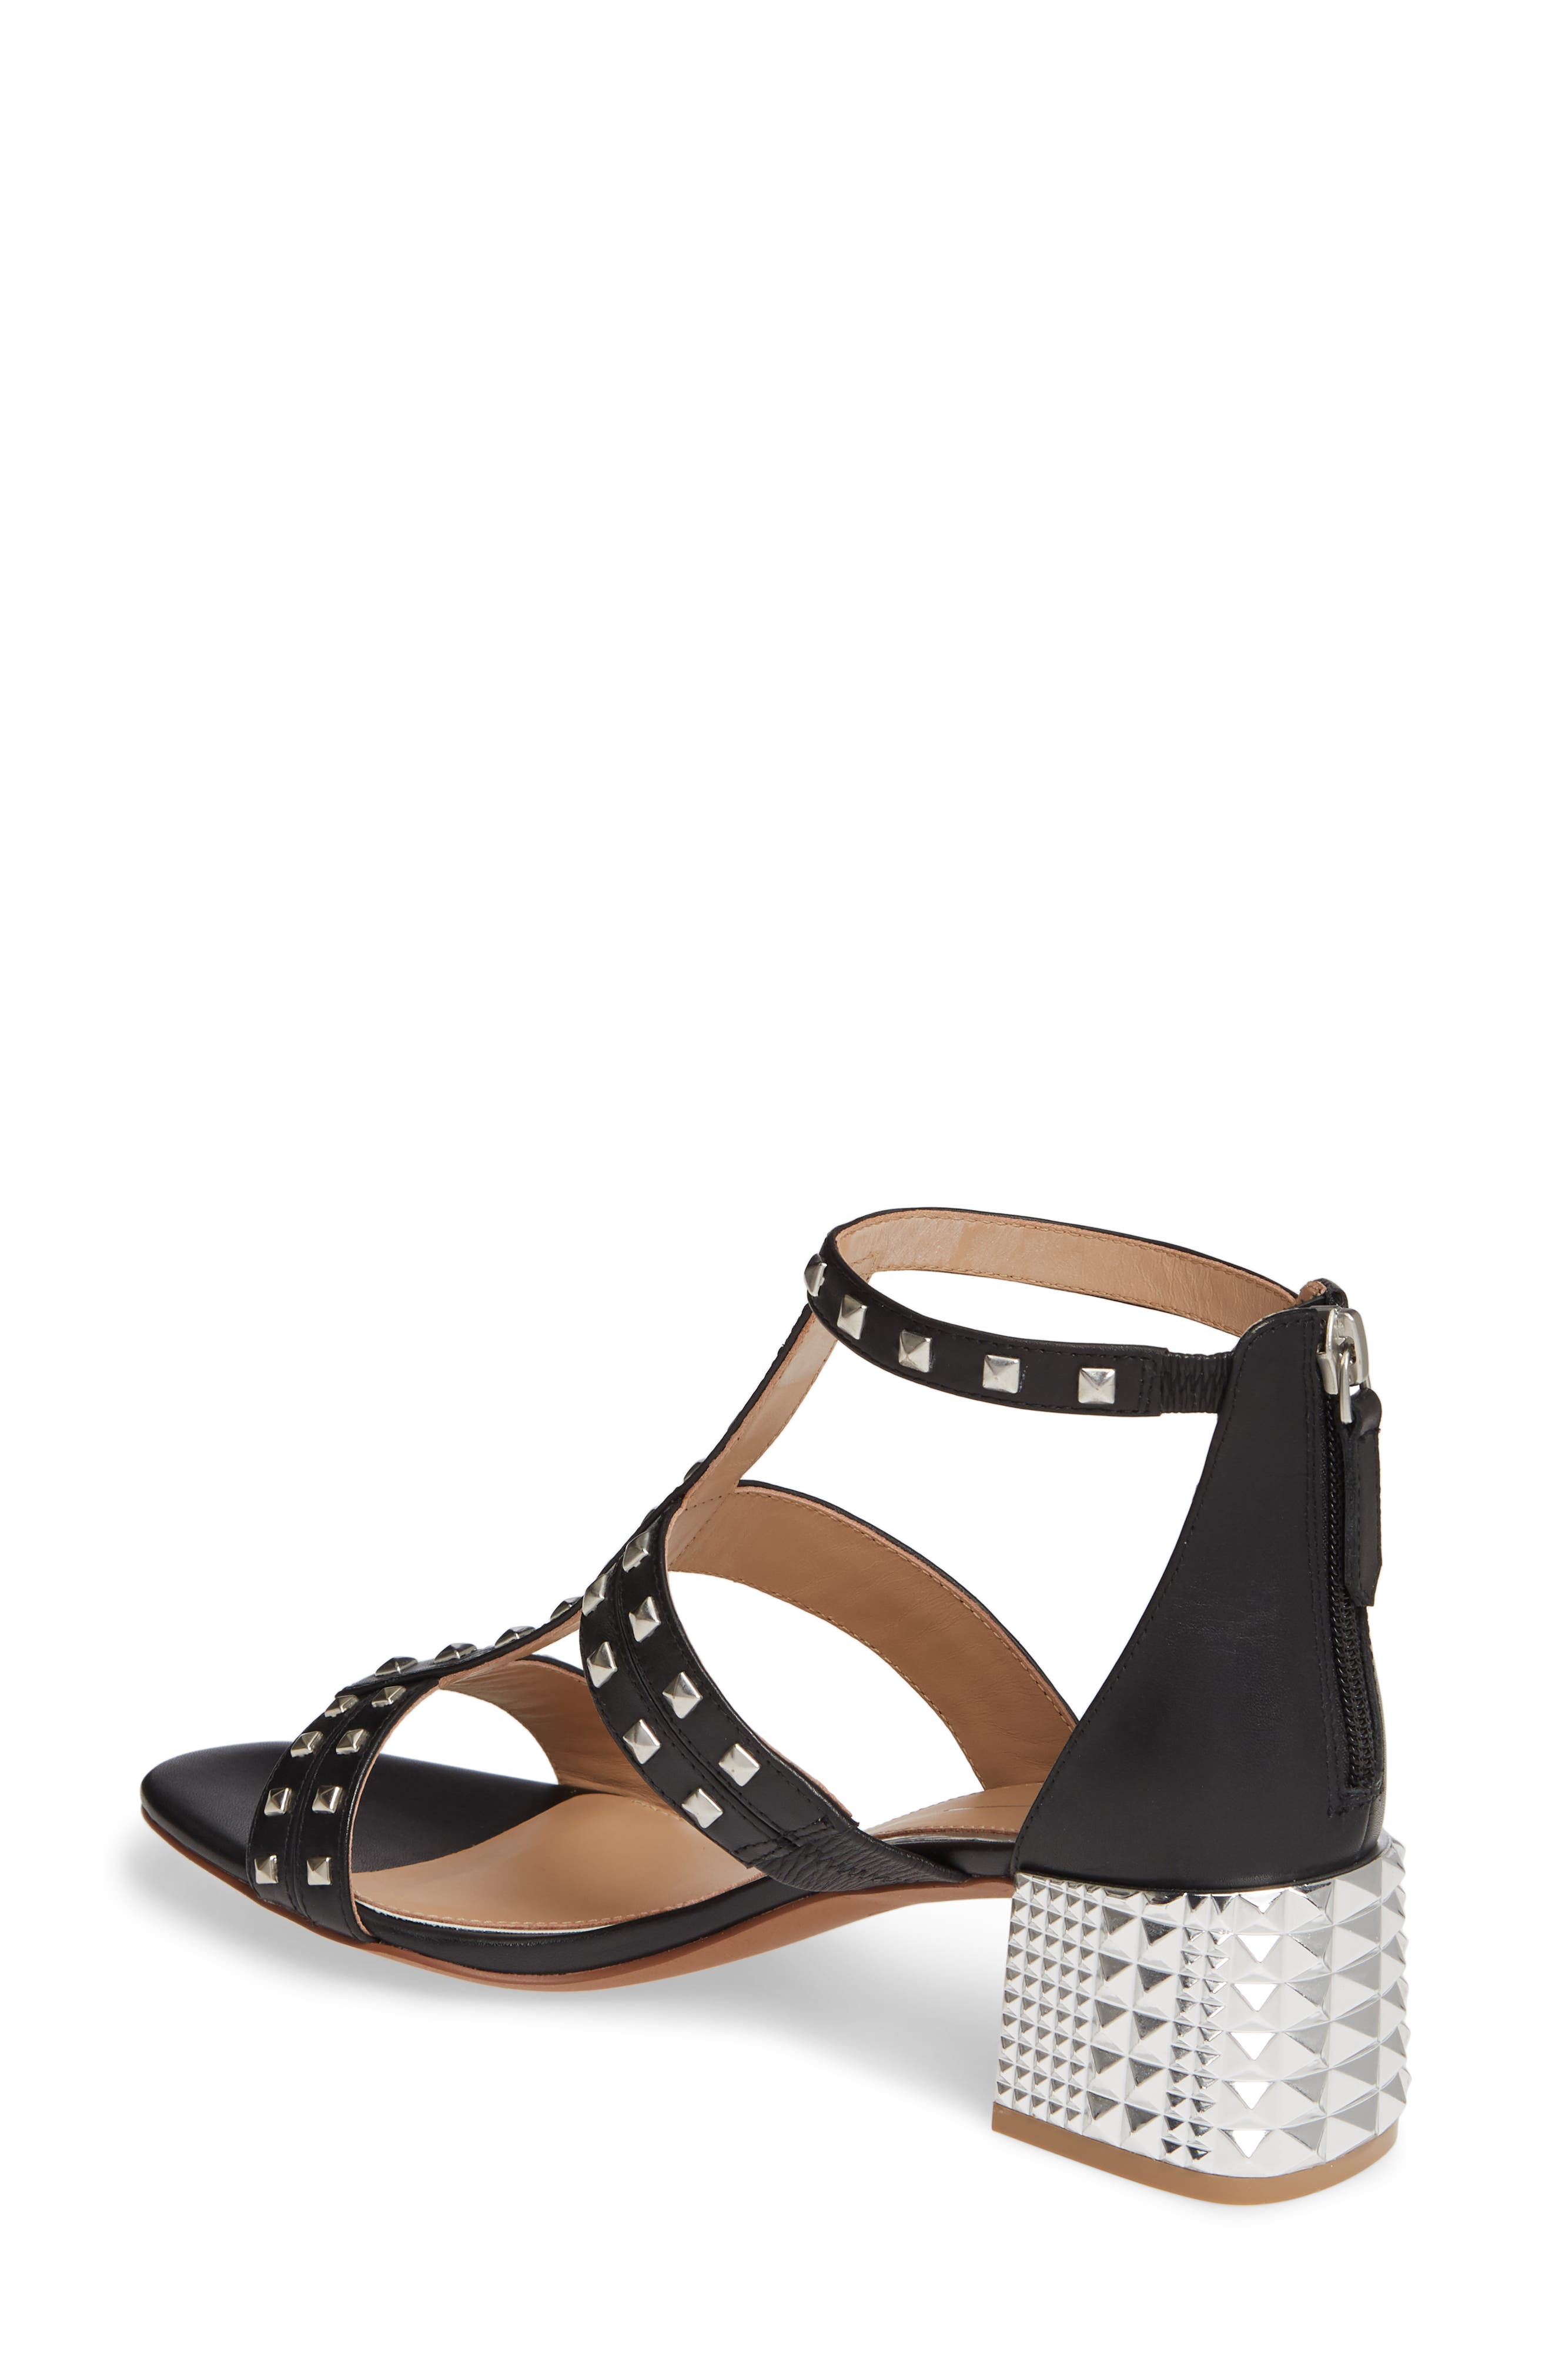 LINEA PAOLO, Harley Sandal, Alternate thumbnail 2, color, BLACK LEATHER